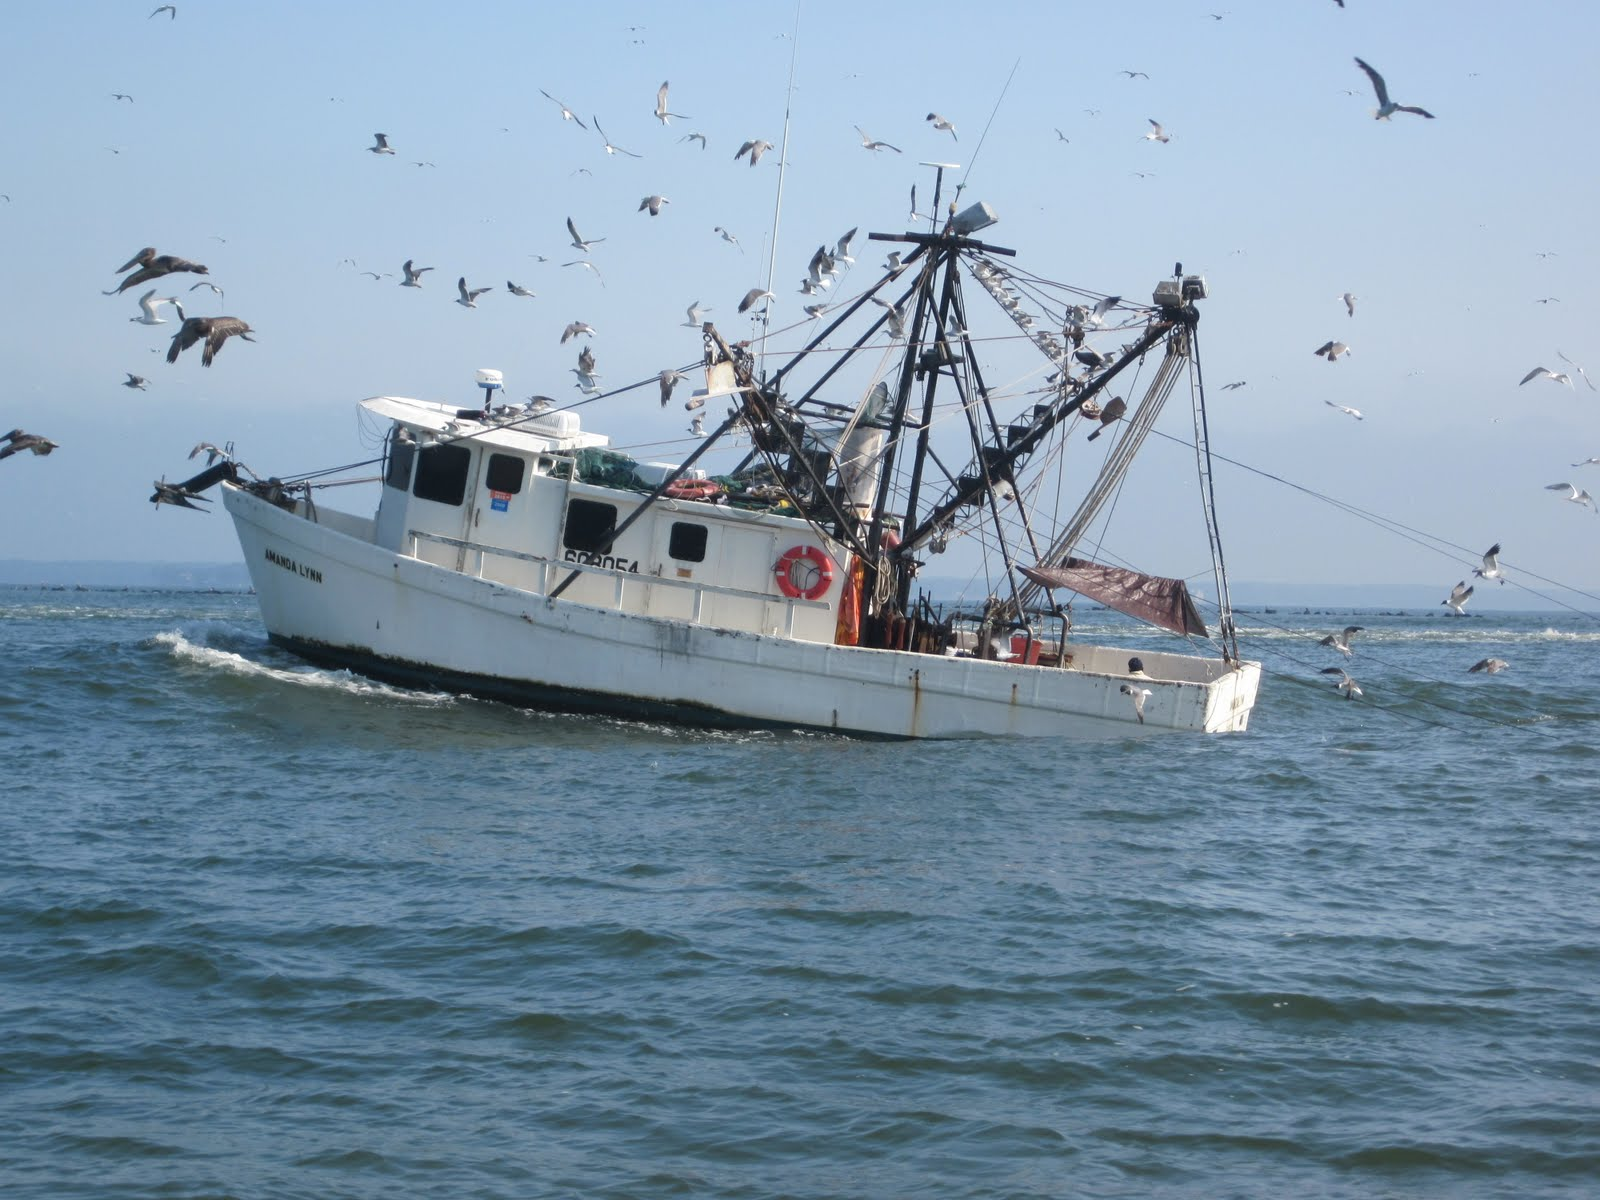 Charis ministries shrimp boats for Commercial fishing boats for sale gulf coast